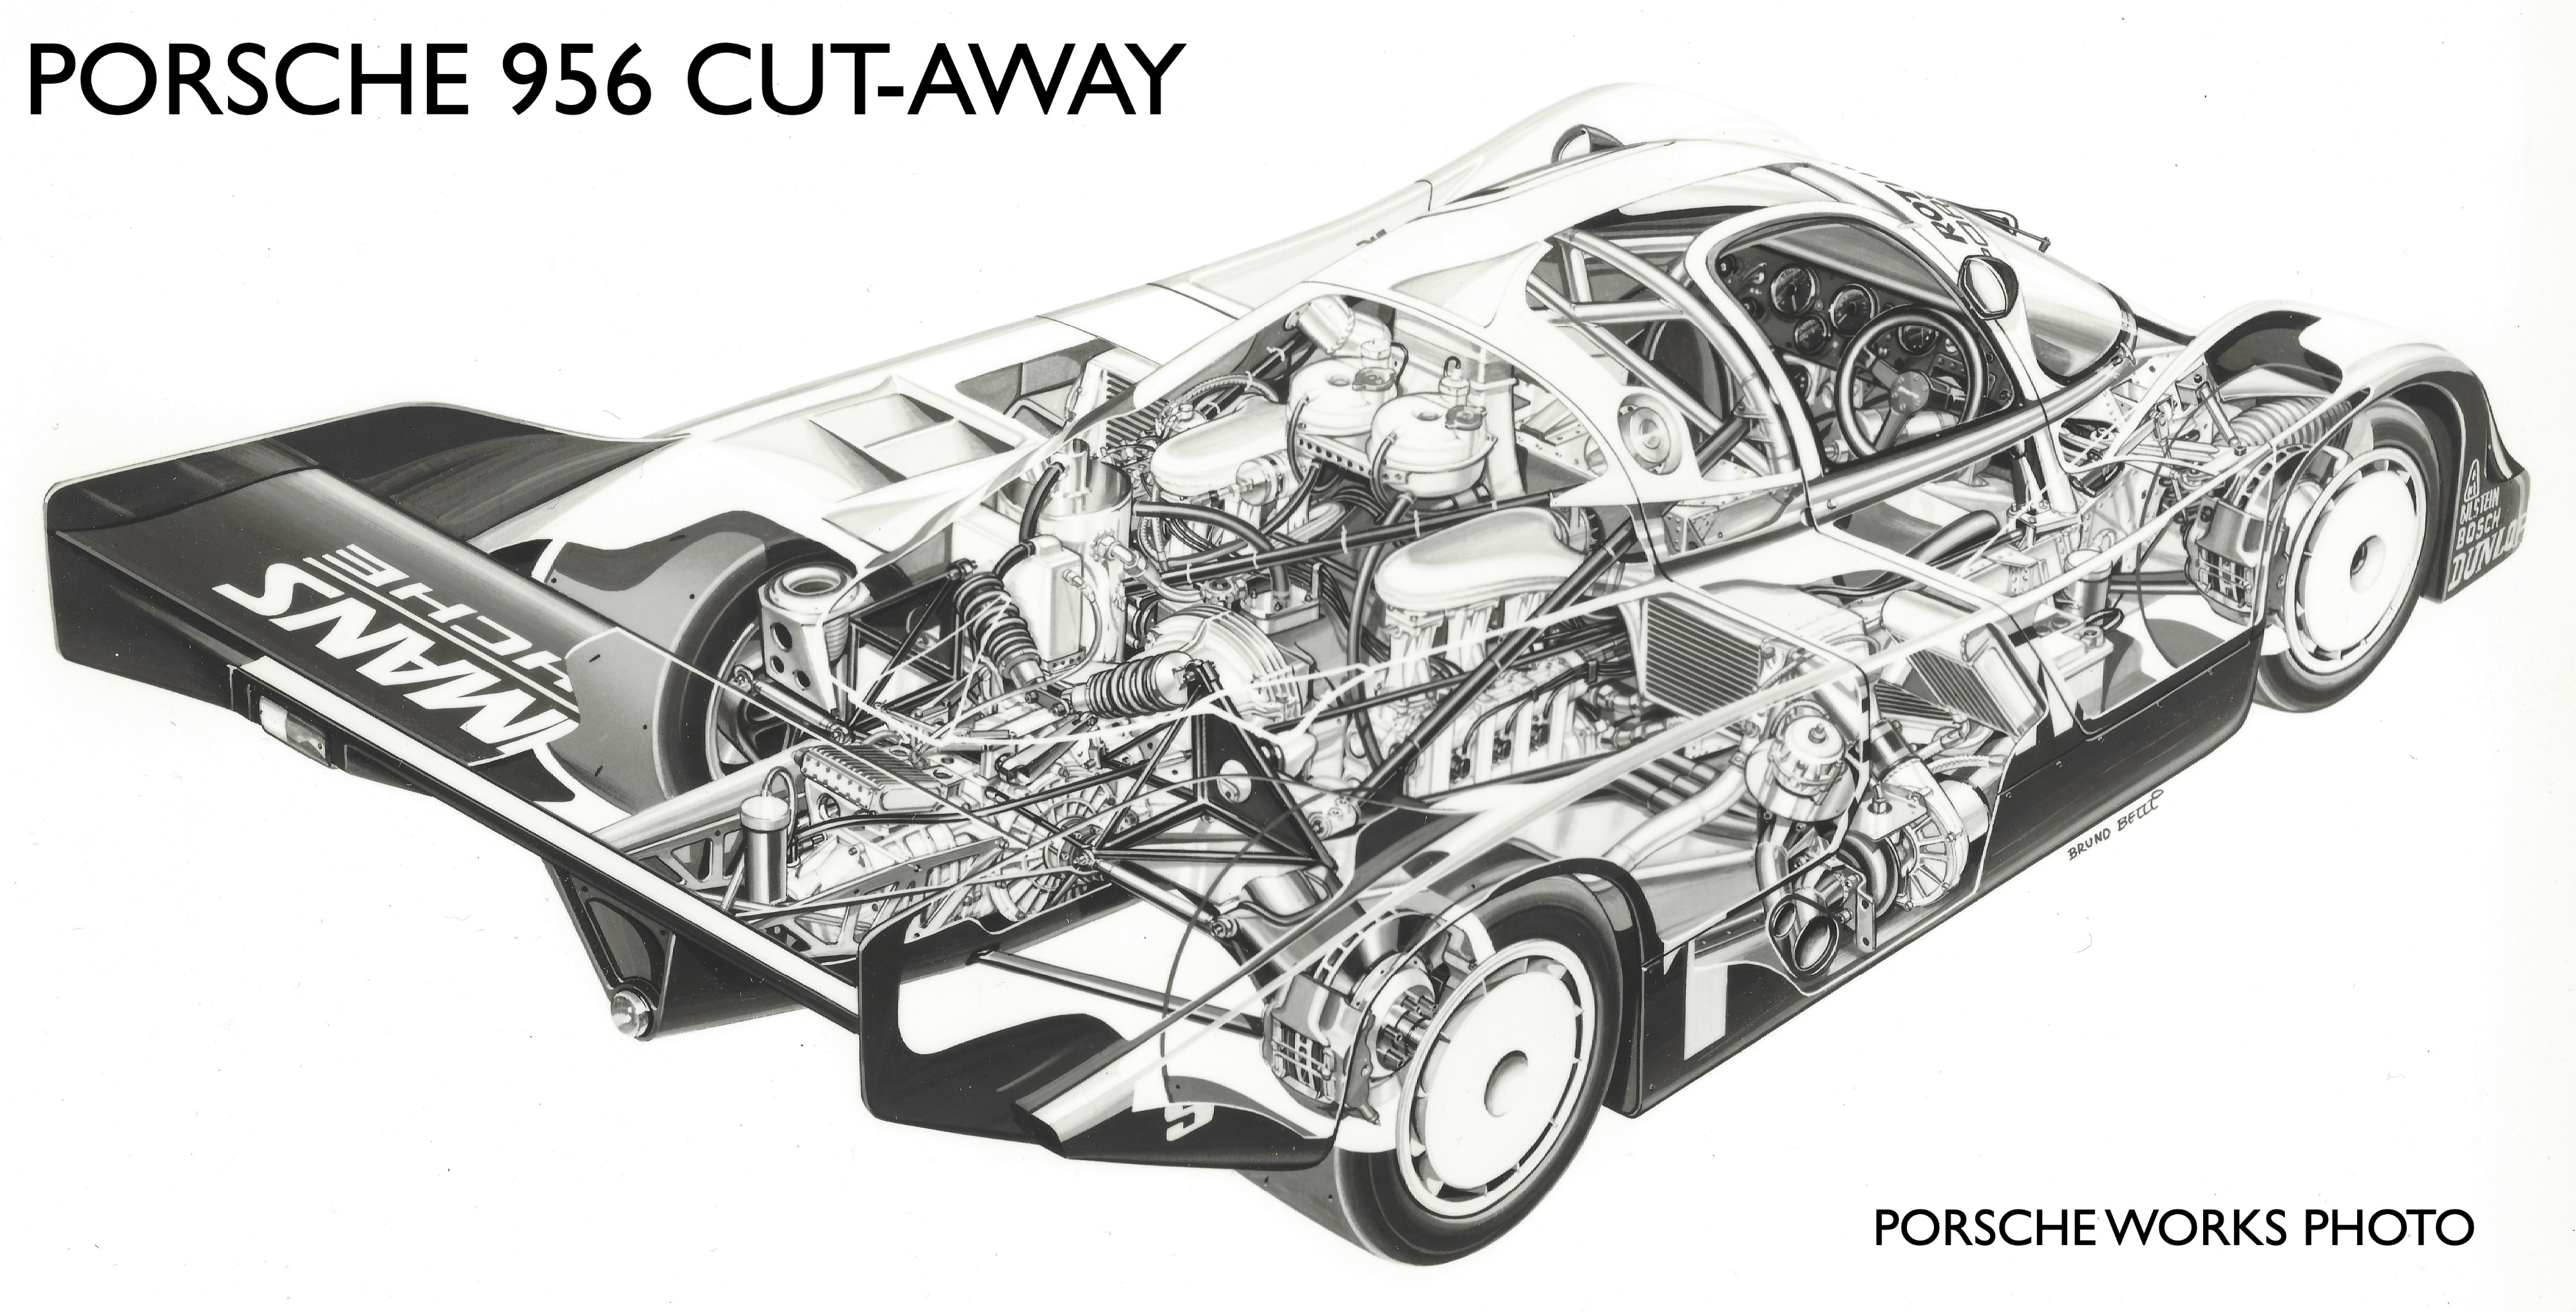 The Tale of Two Champions: the Porsche 956 and 962